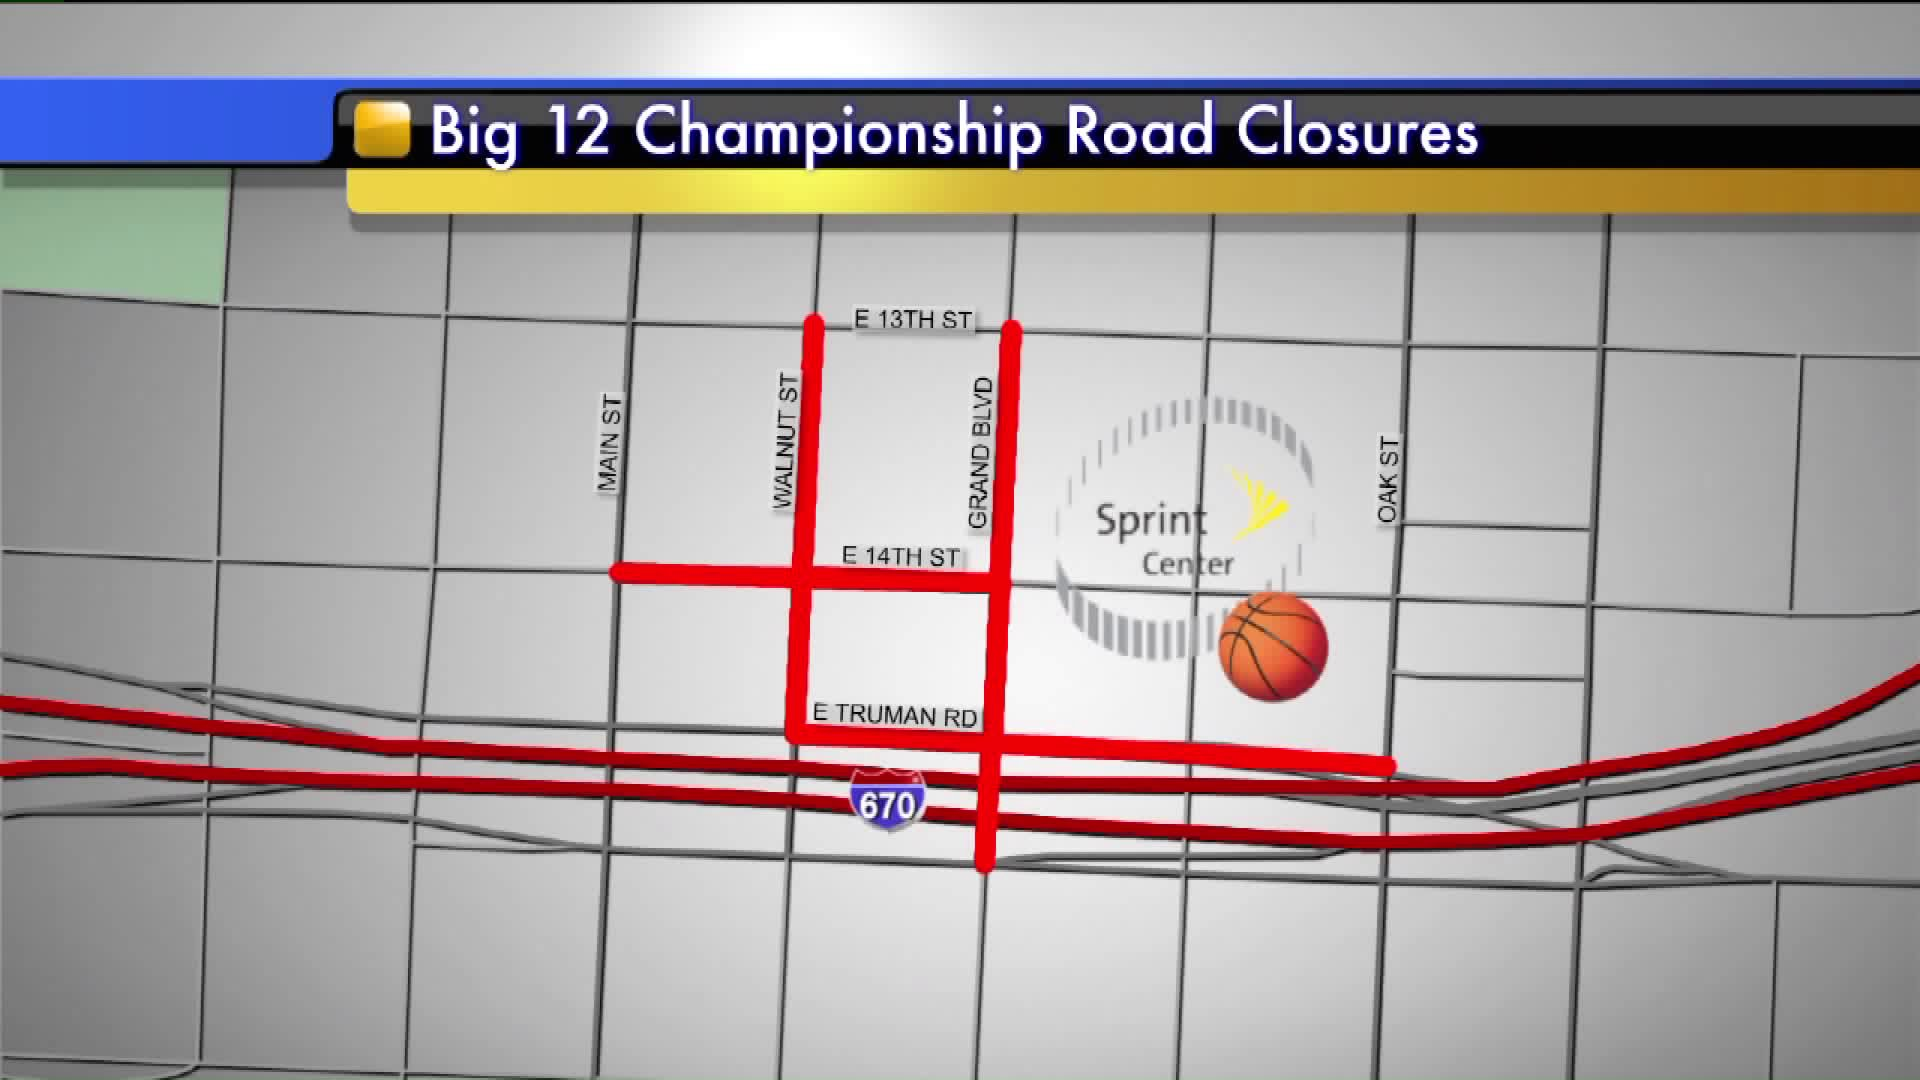 Big 12 Championship road closures